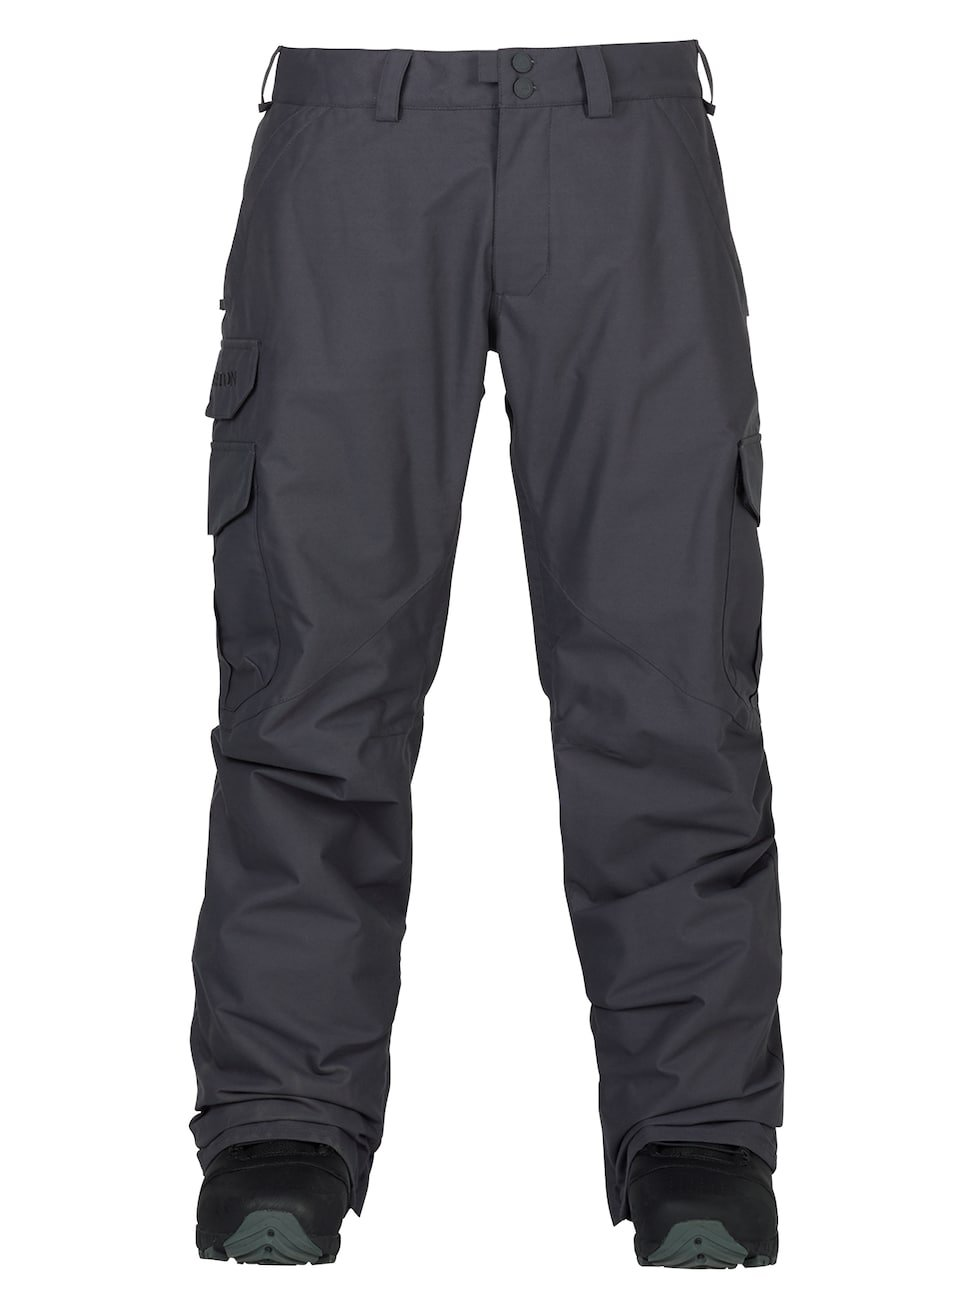 Burton Men's Cargo Mid Fit Pants Cargo Pants - Mid Fit